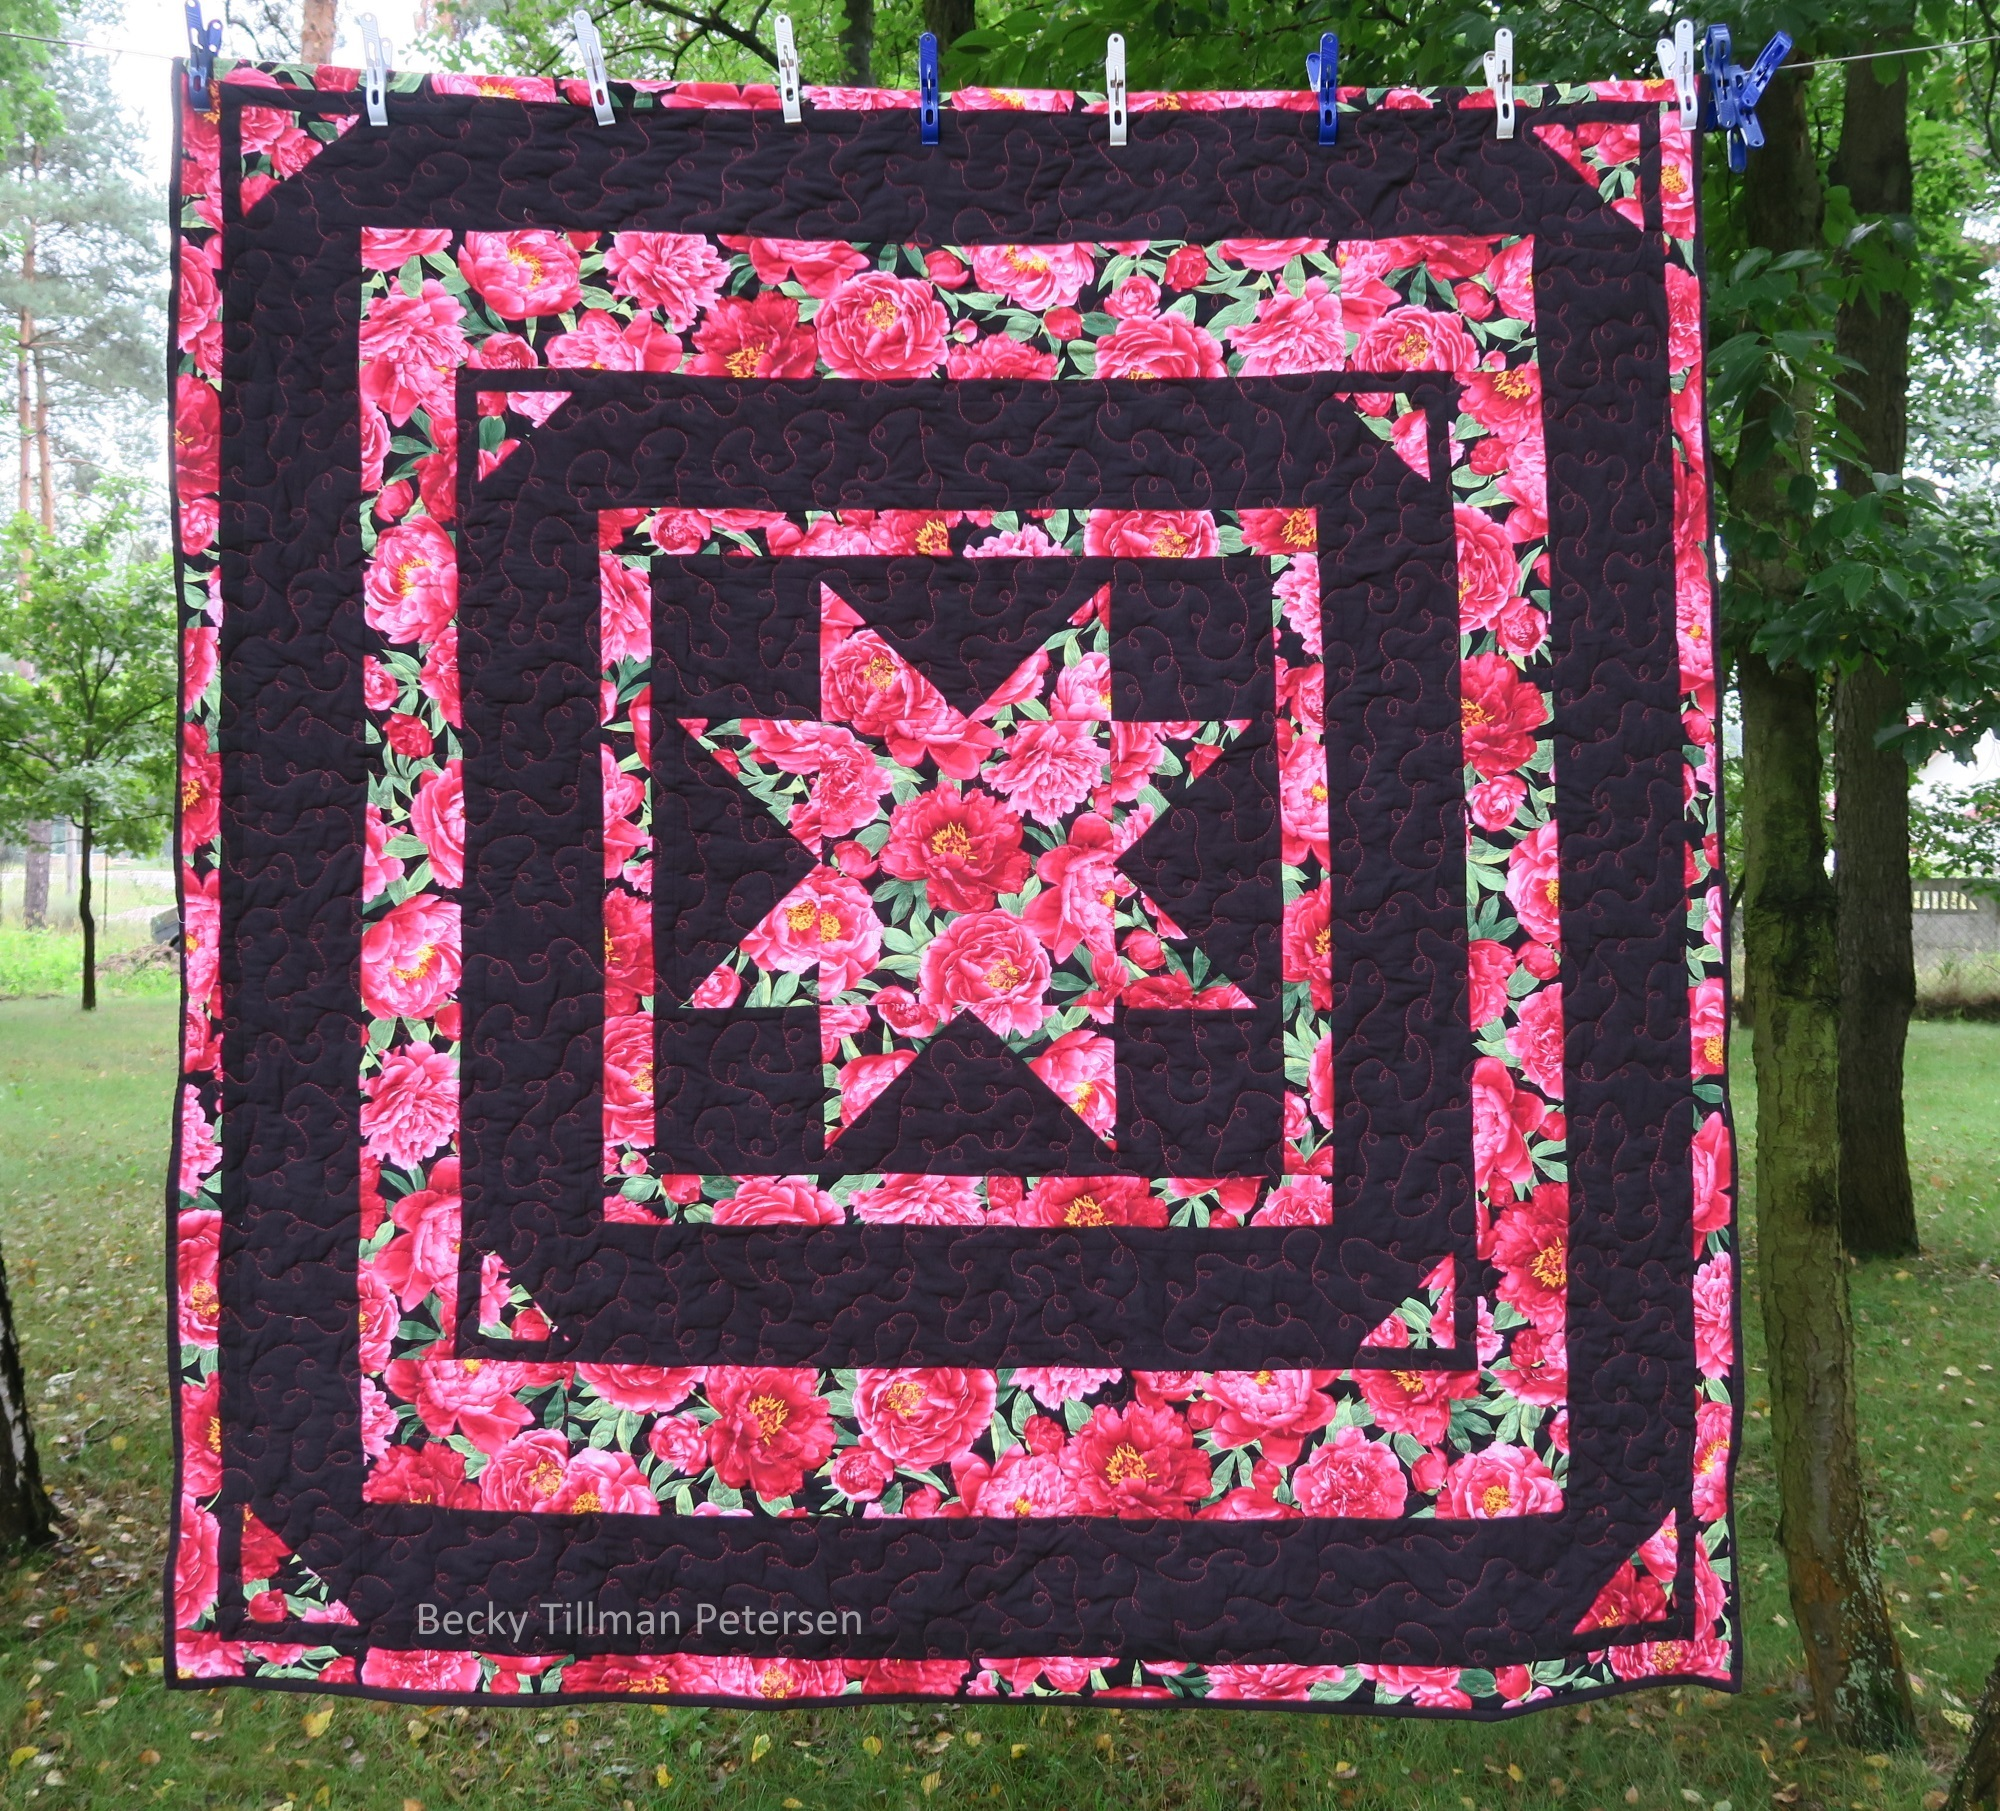 Big star quilt is completed and hung on a clothes line with trees in the background. Big star has rose and floral pattern in the star